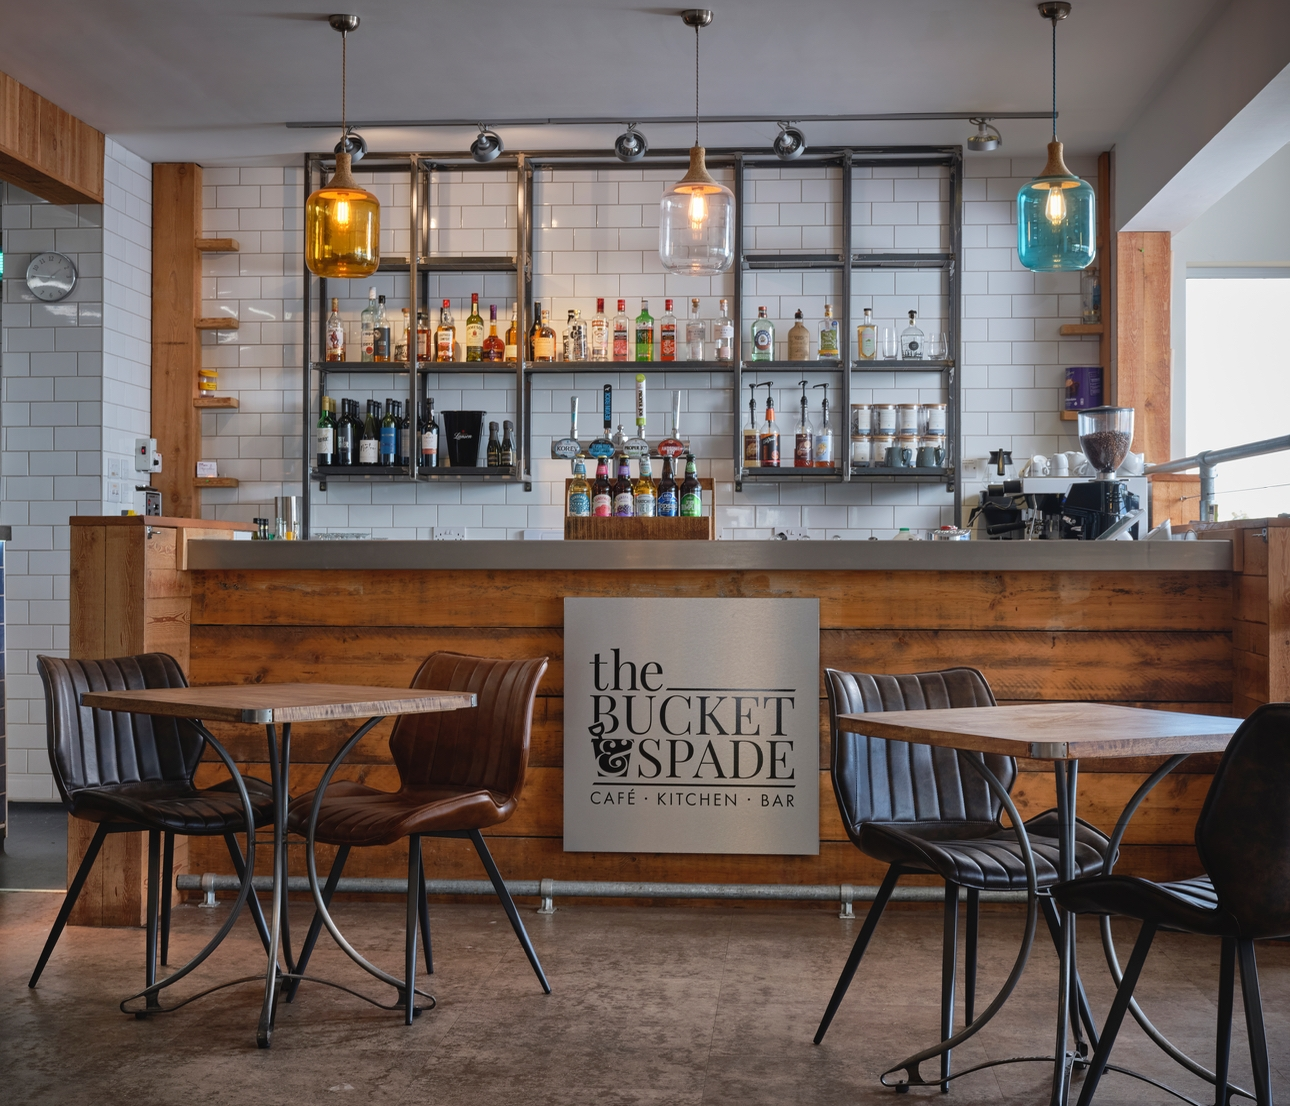 Autumn staycation, the bucket & spade cafe, locally sourced produce, Devon